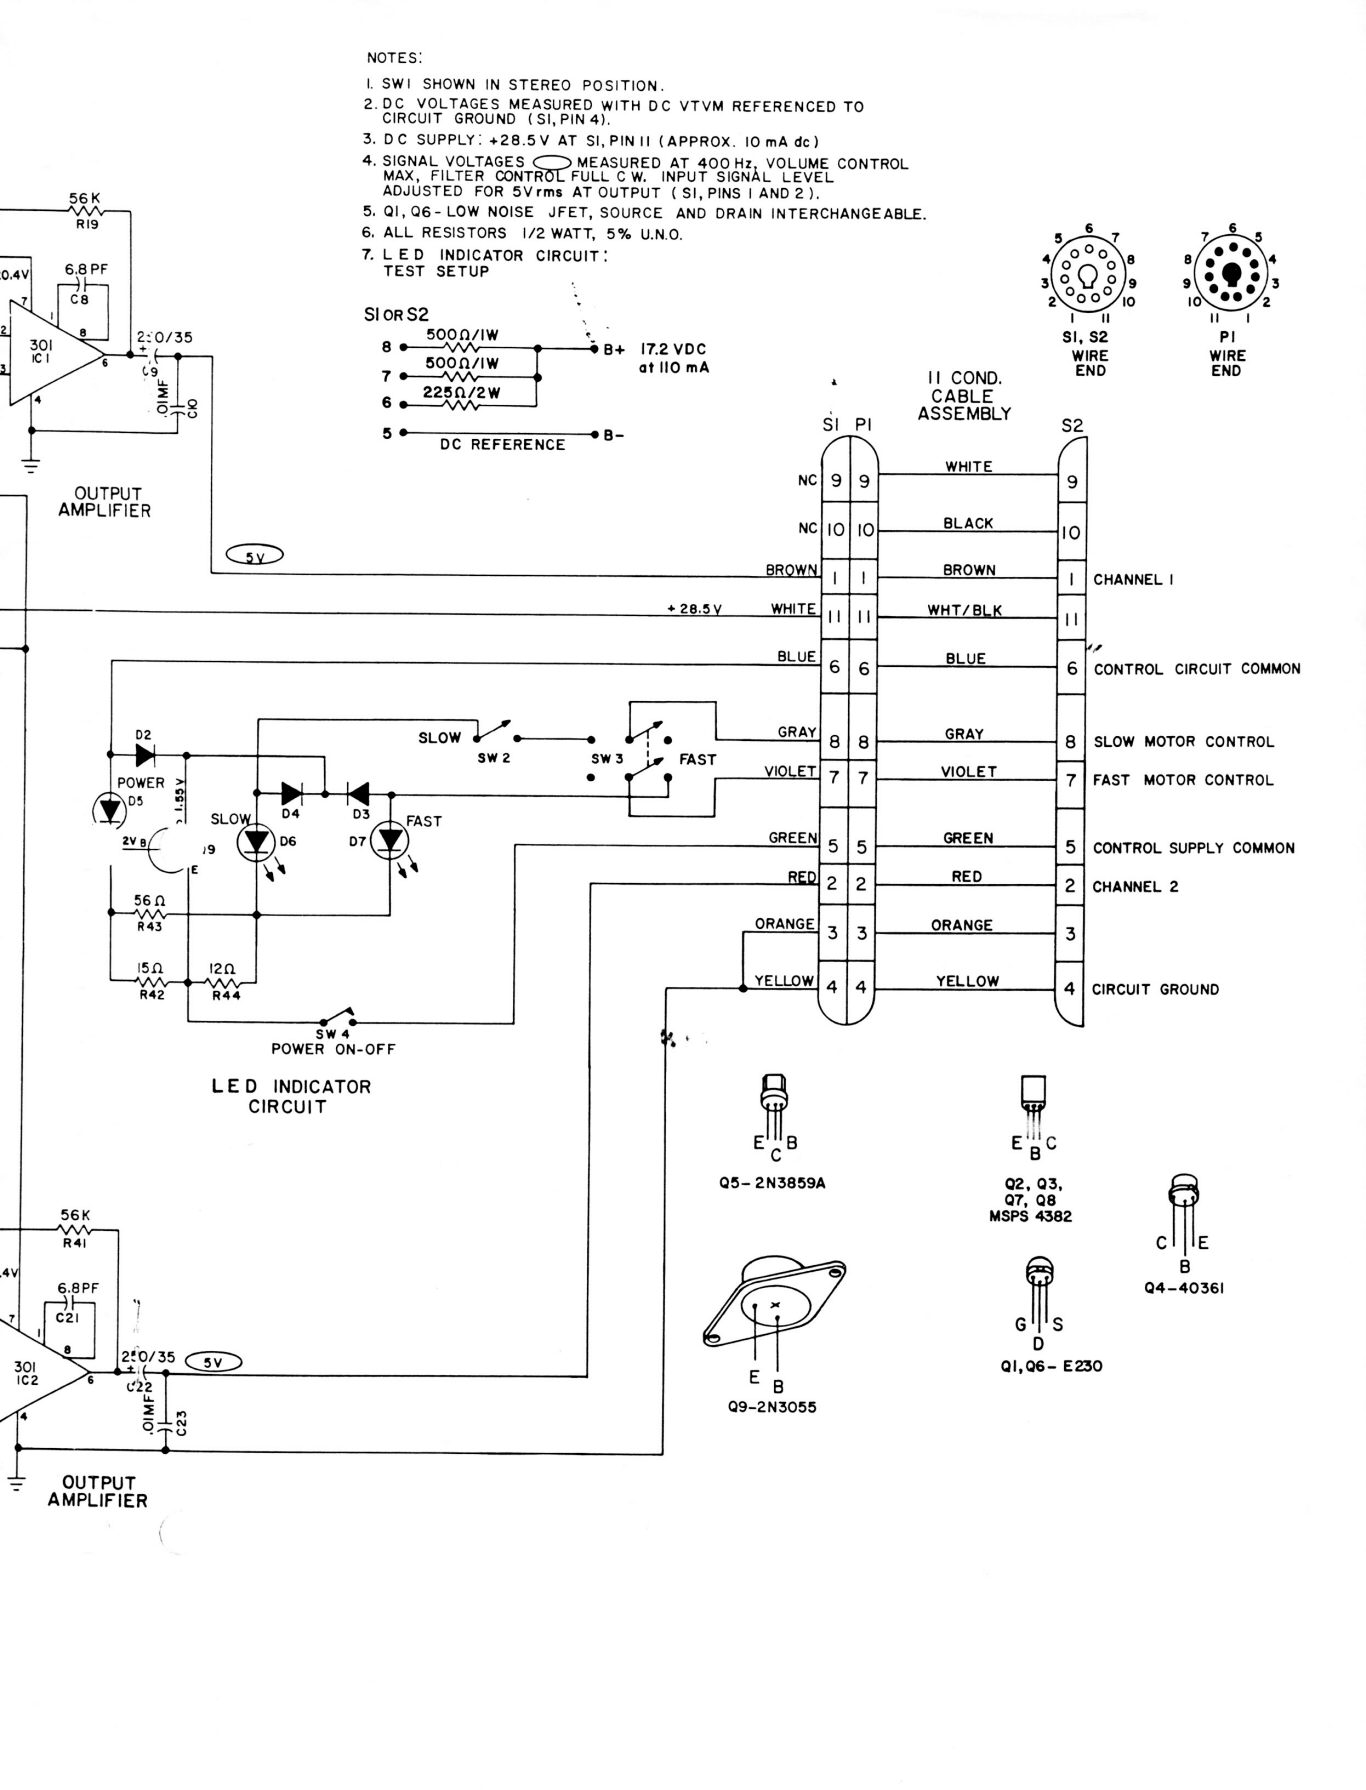 Diagrams  puterHistory besides Figures together with Fig2 likewise Fig1 further Lch101la circuit 20diagram. on schematic diagram